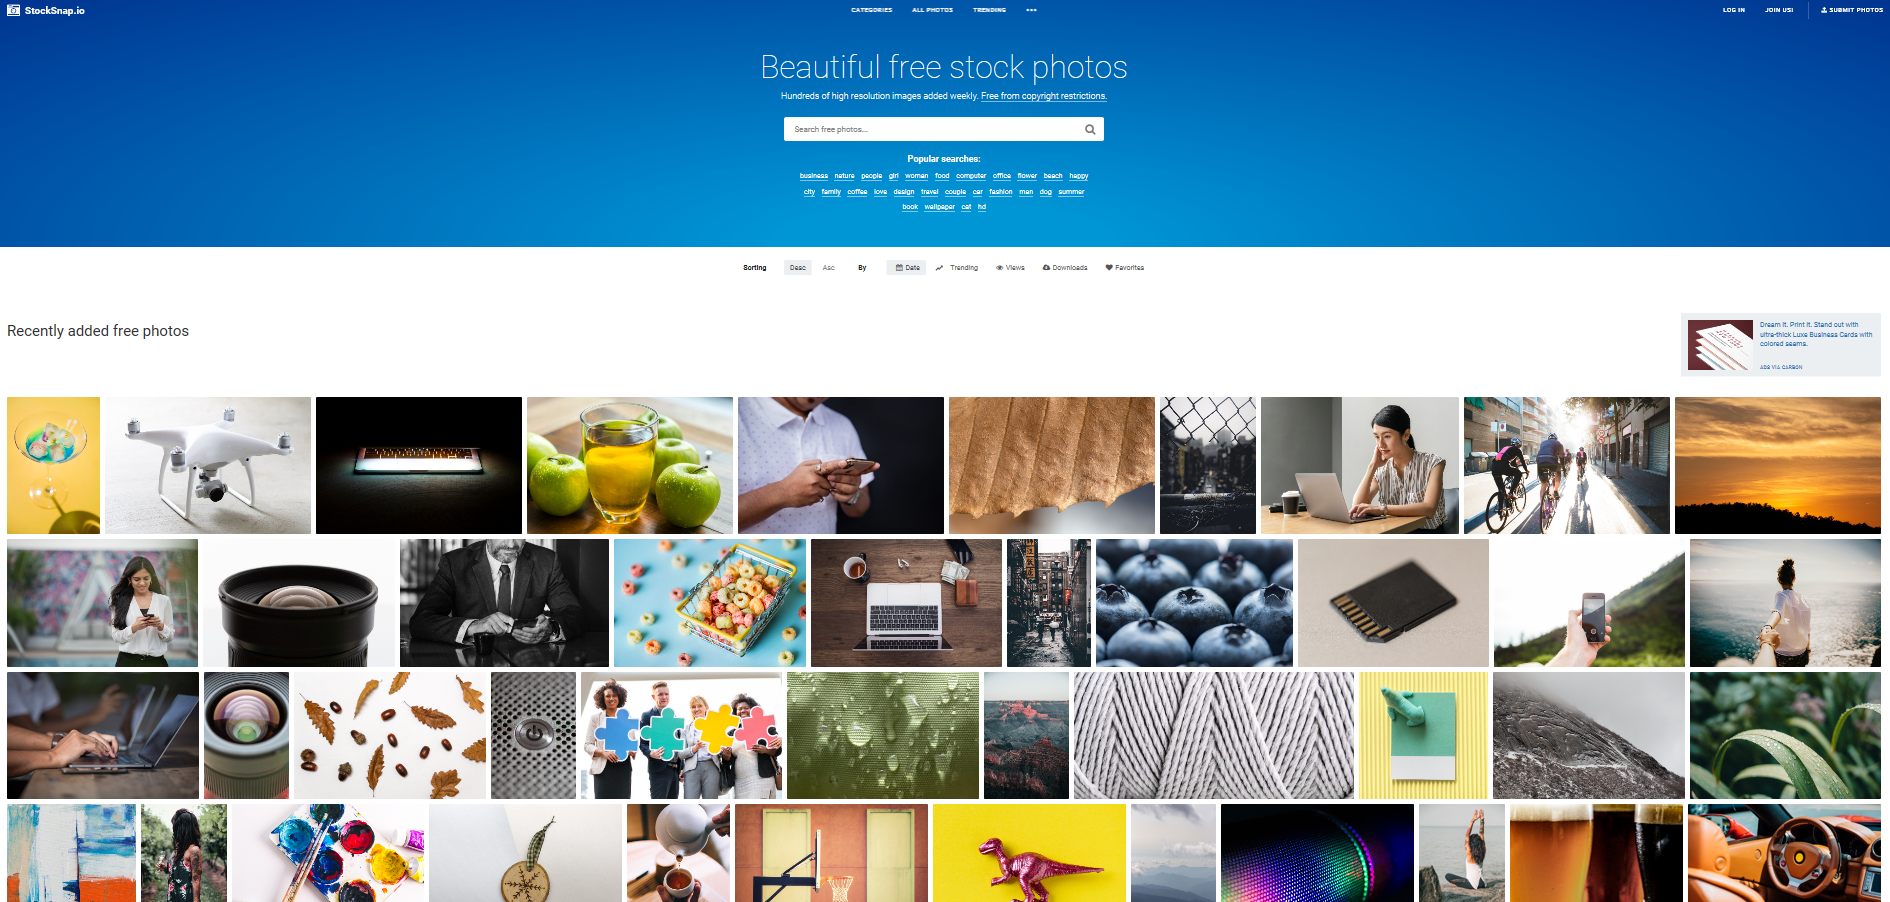 StockSnap.io is a free stock image resource for graphic, content, and web designers.